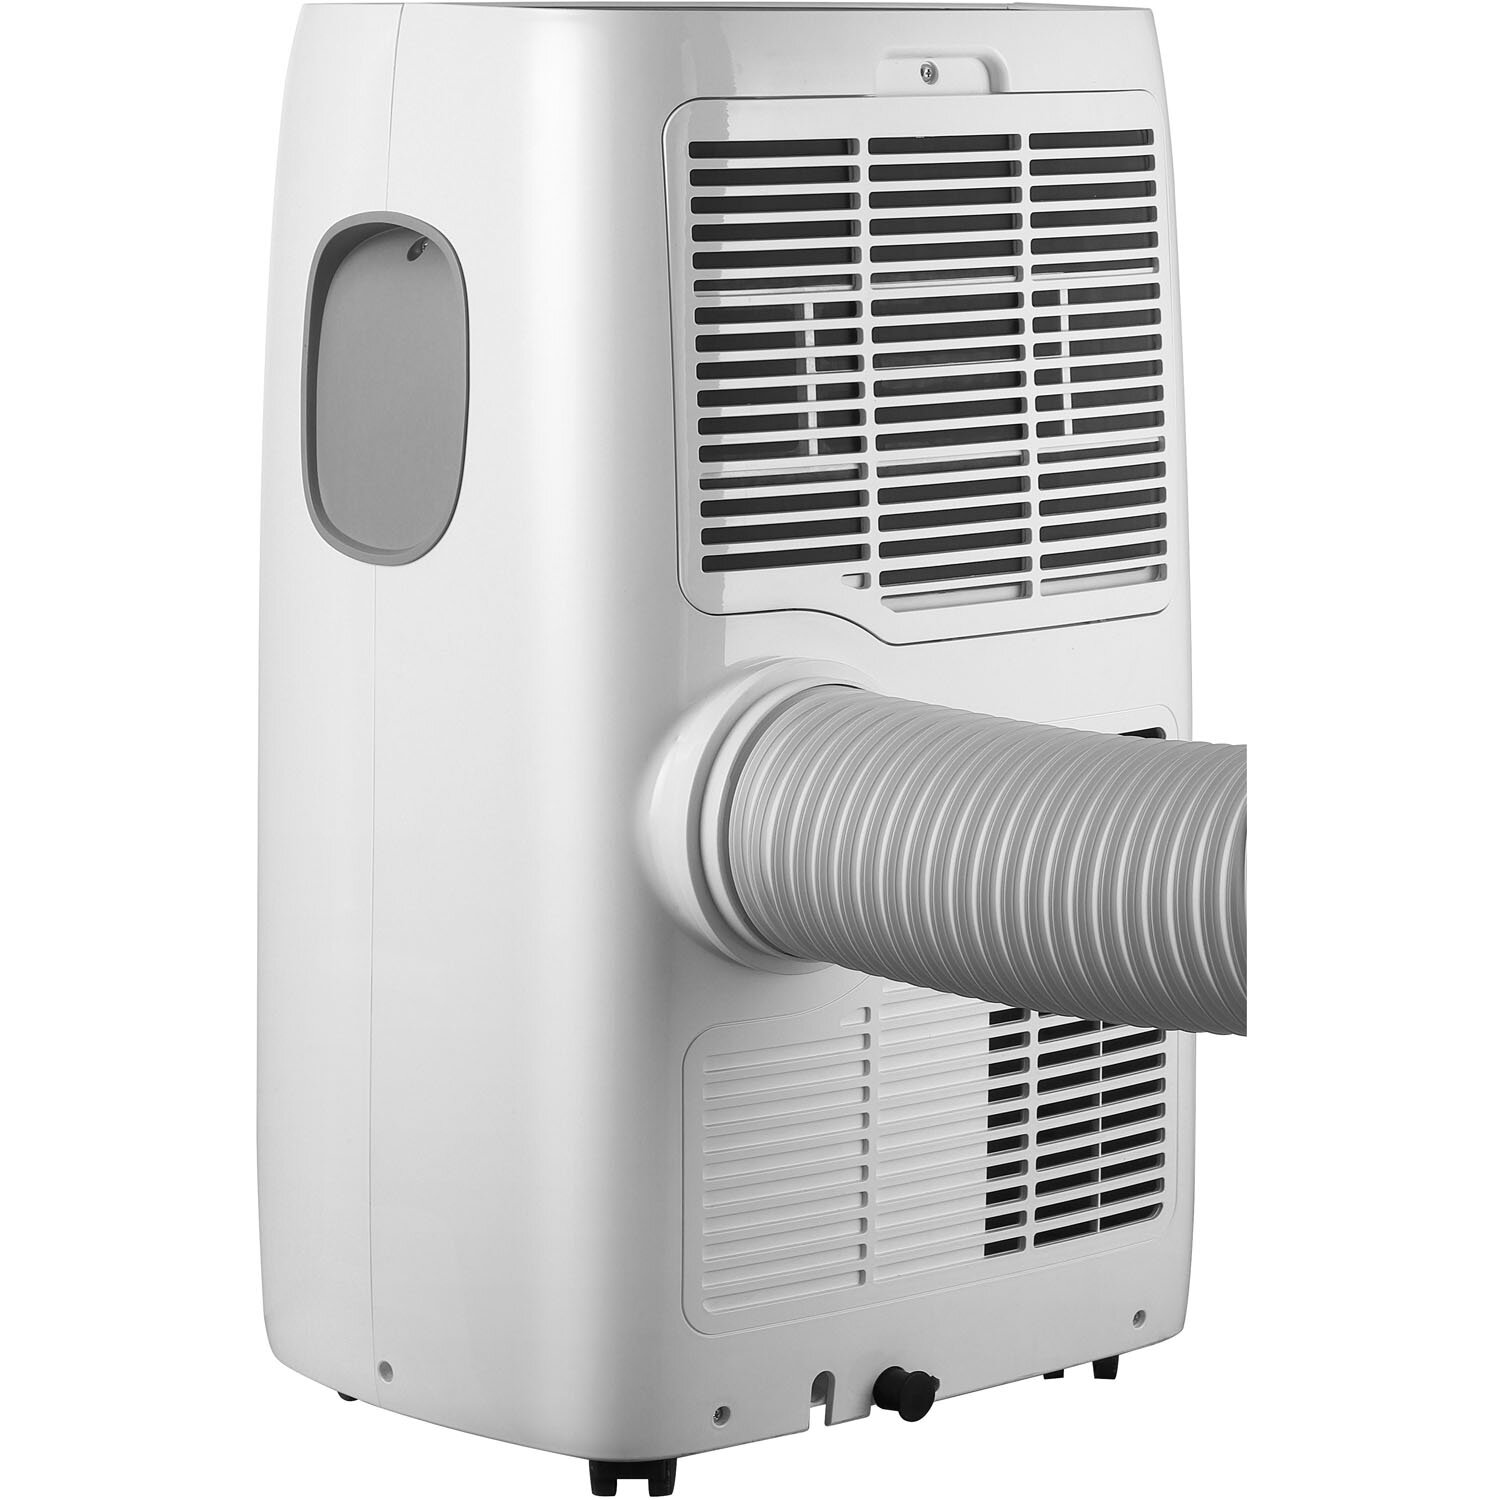 Emerson Quiet Kool 8 000 Btu Portable Air Conditioner With